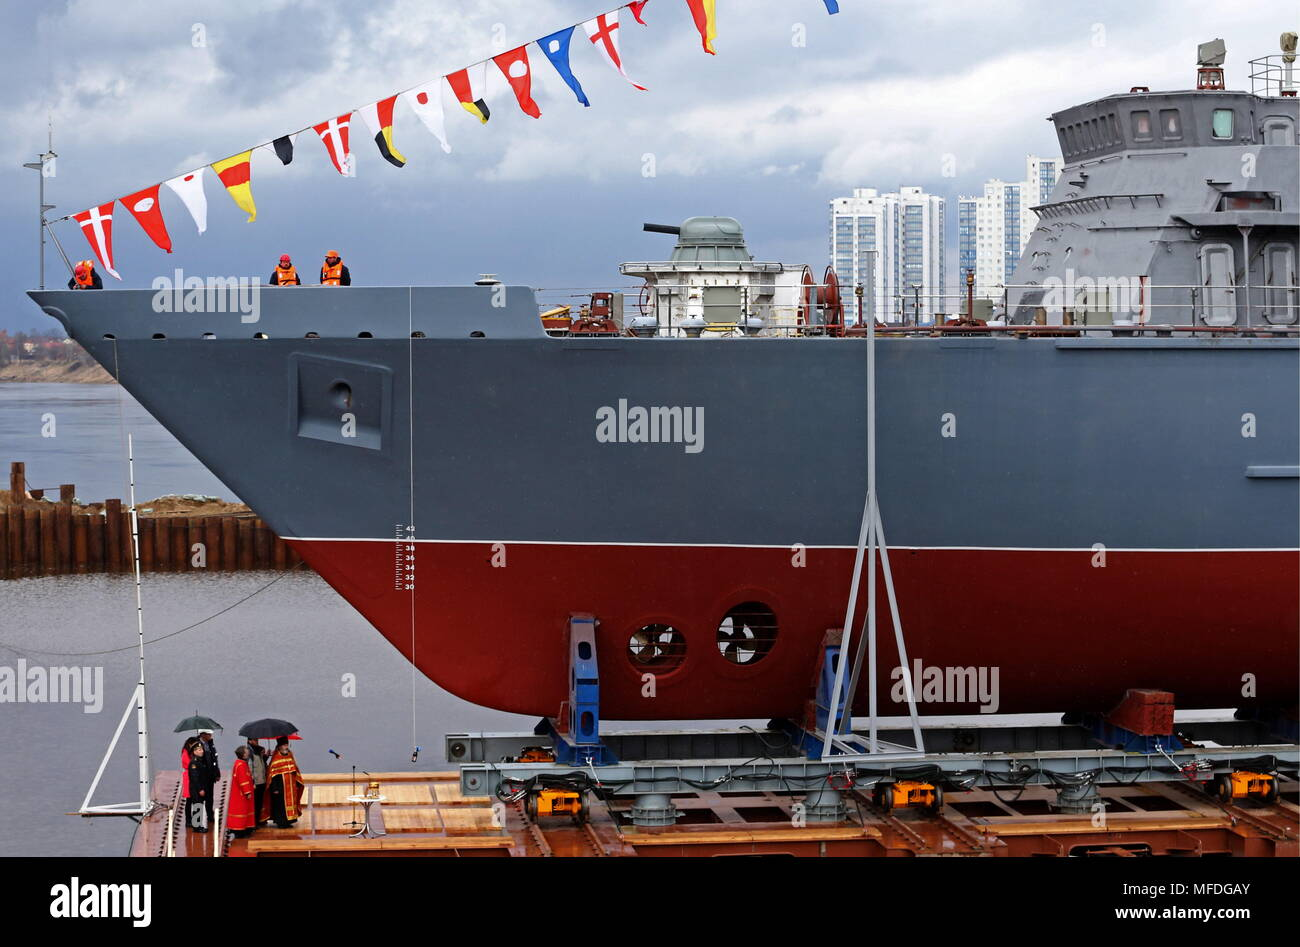 Minesweeper Ivan Antonov went to the factory running tests 11